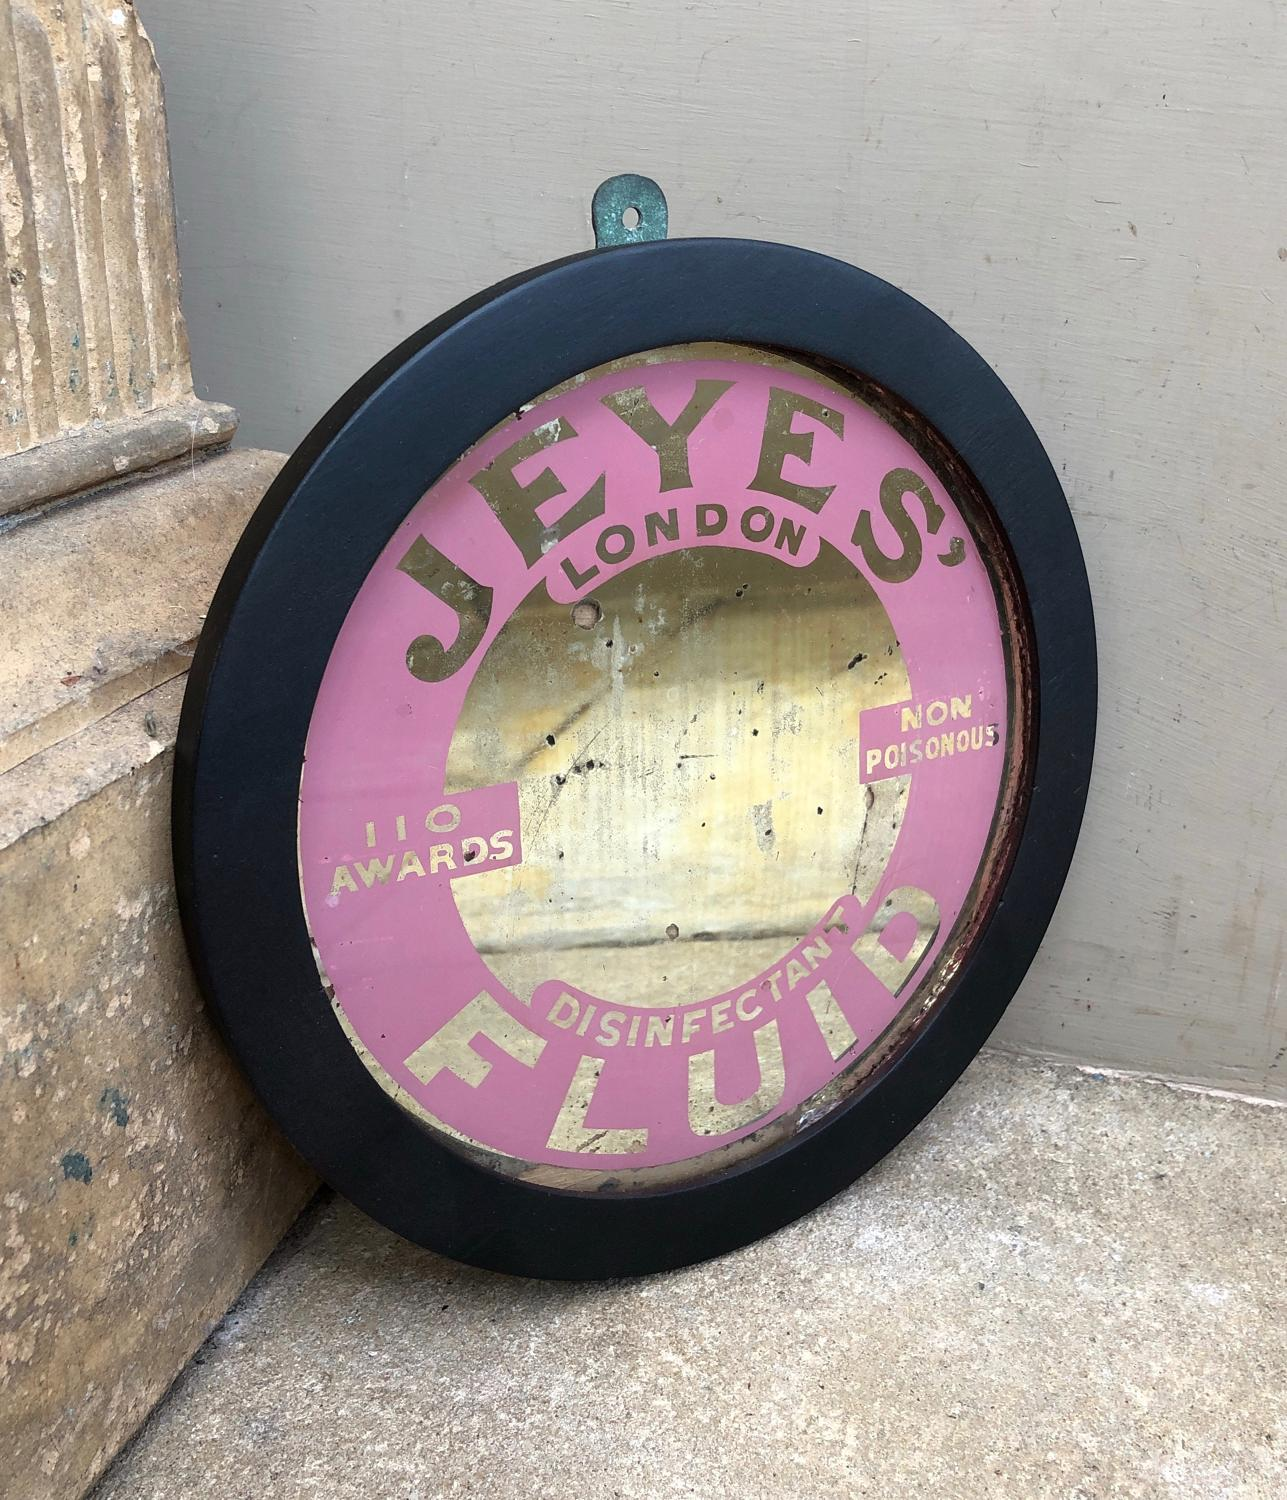 1930s Shops Advertising Mirror - Jeyes Disinfectant - Great Pink